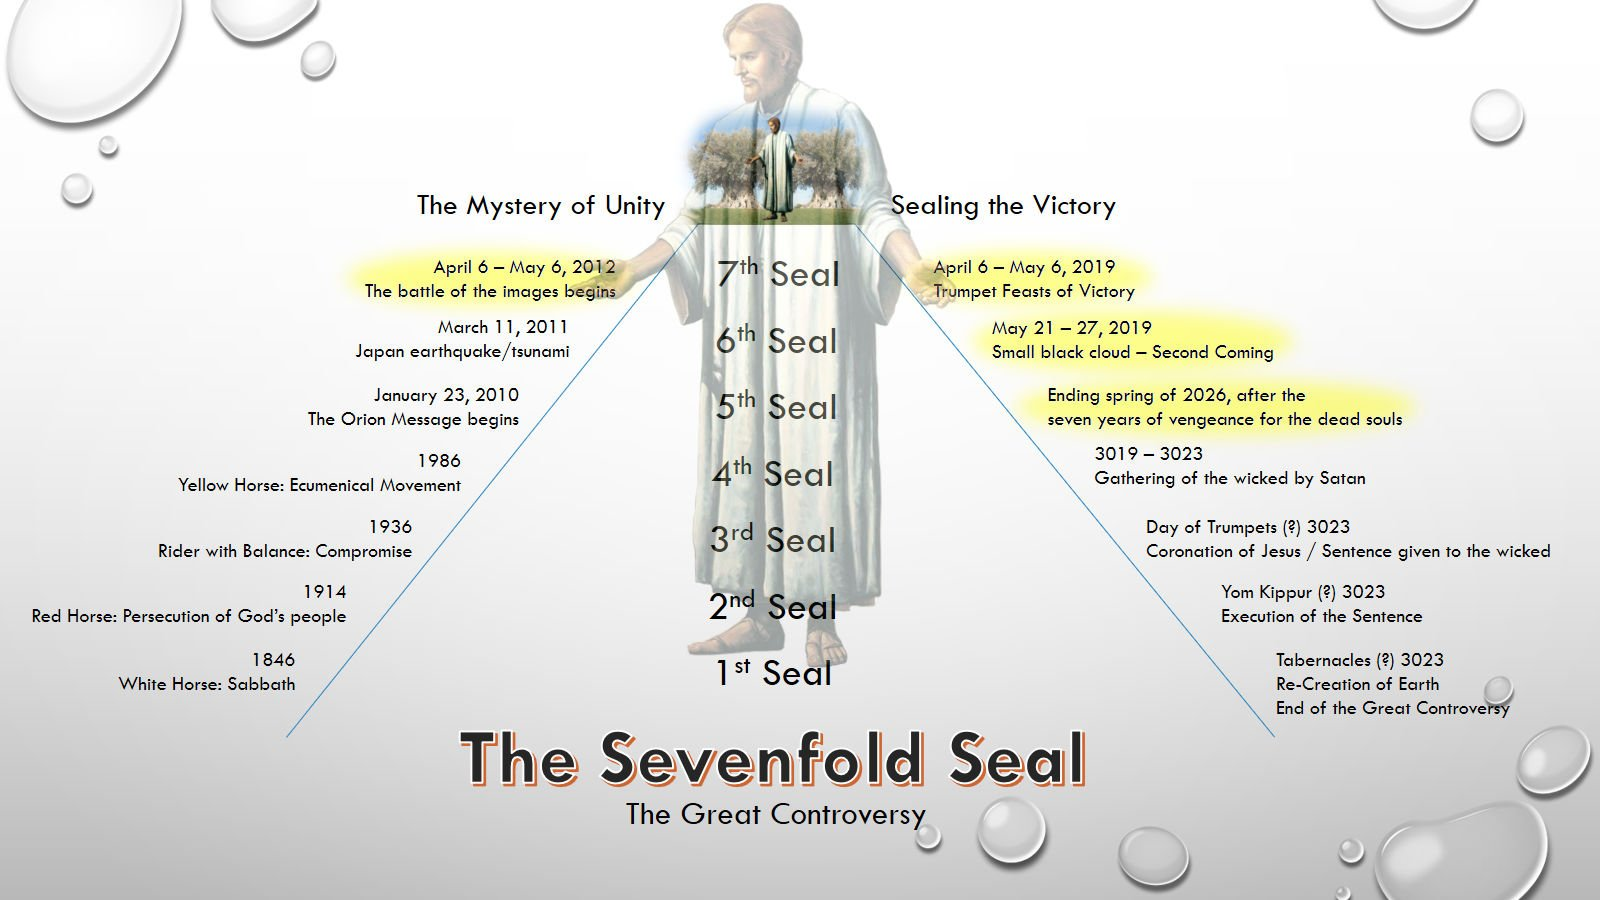 The Sevenfold Seal